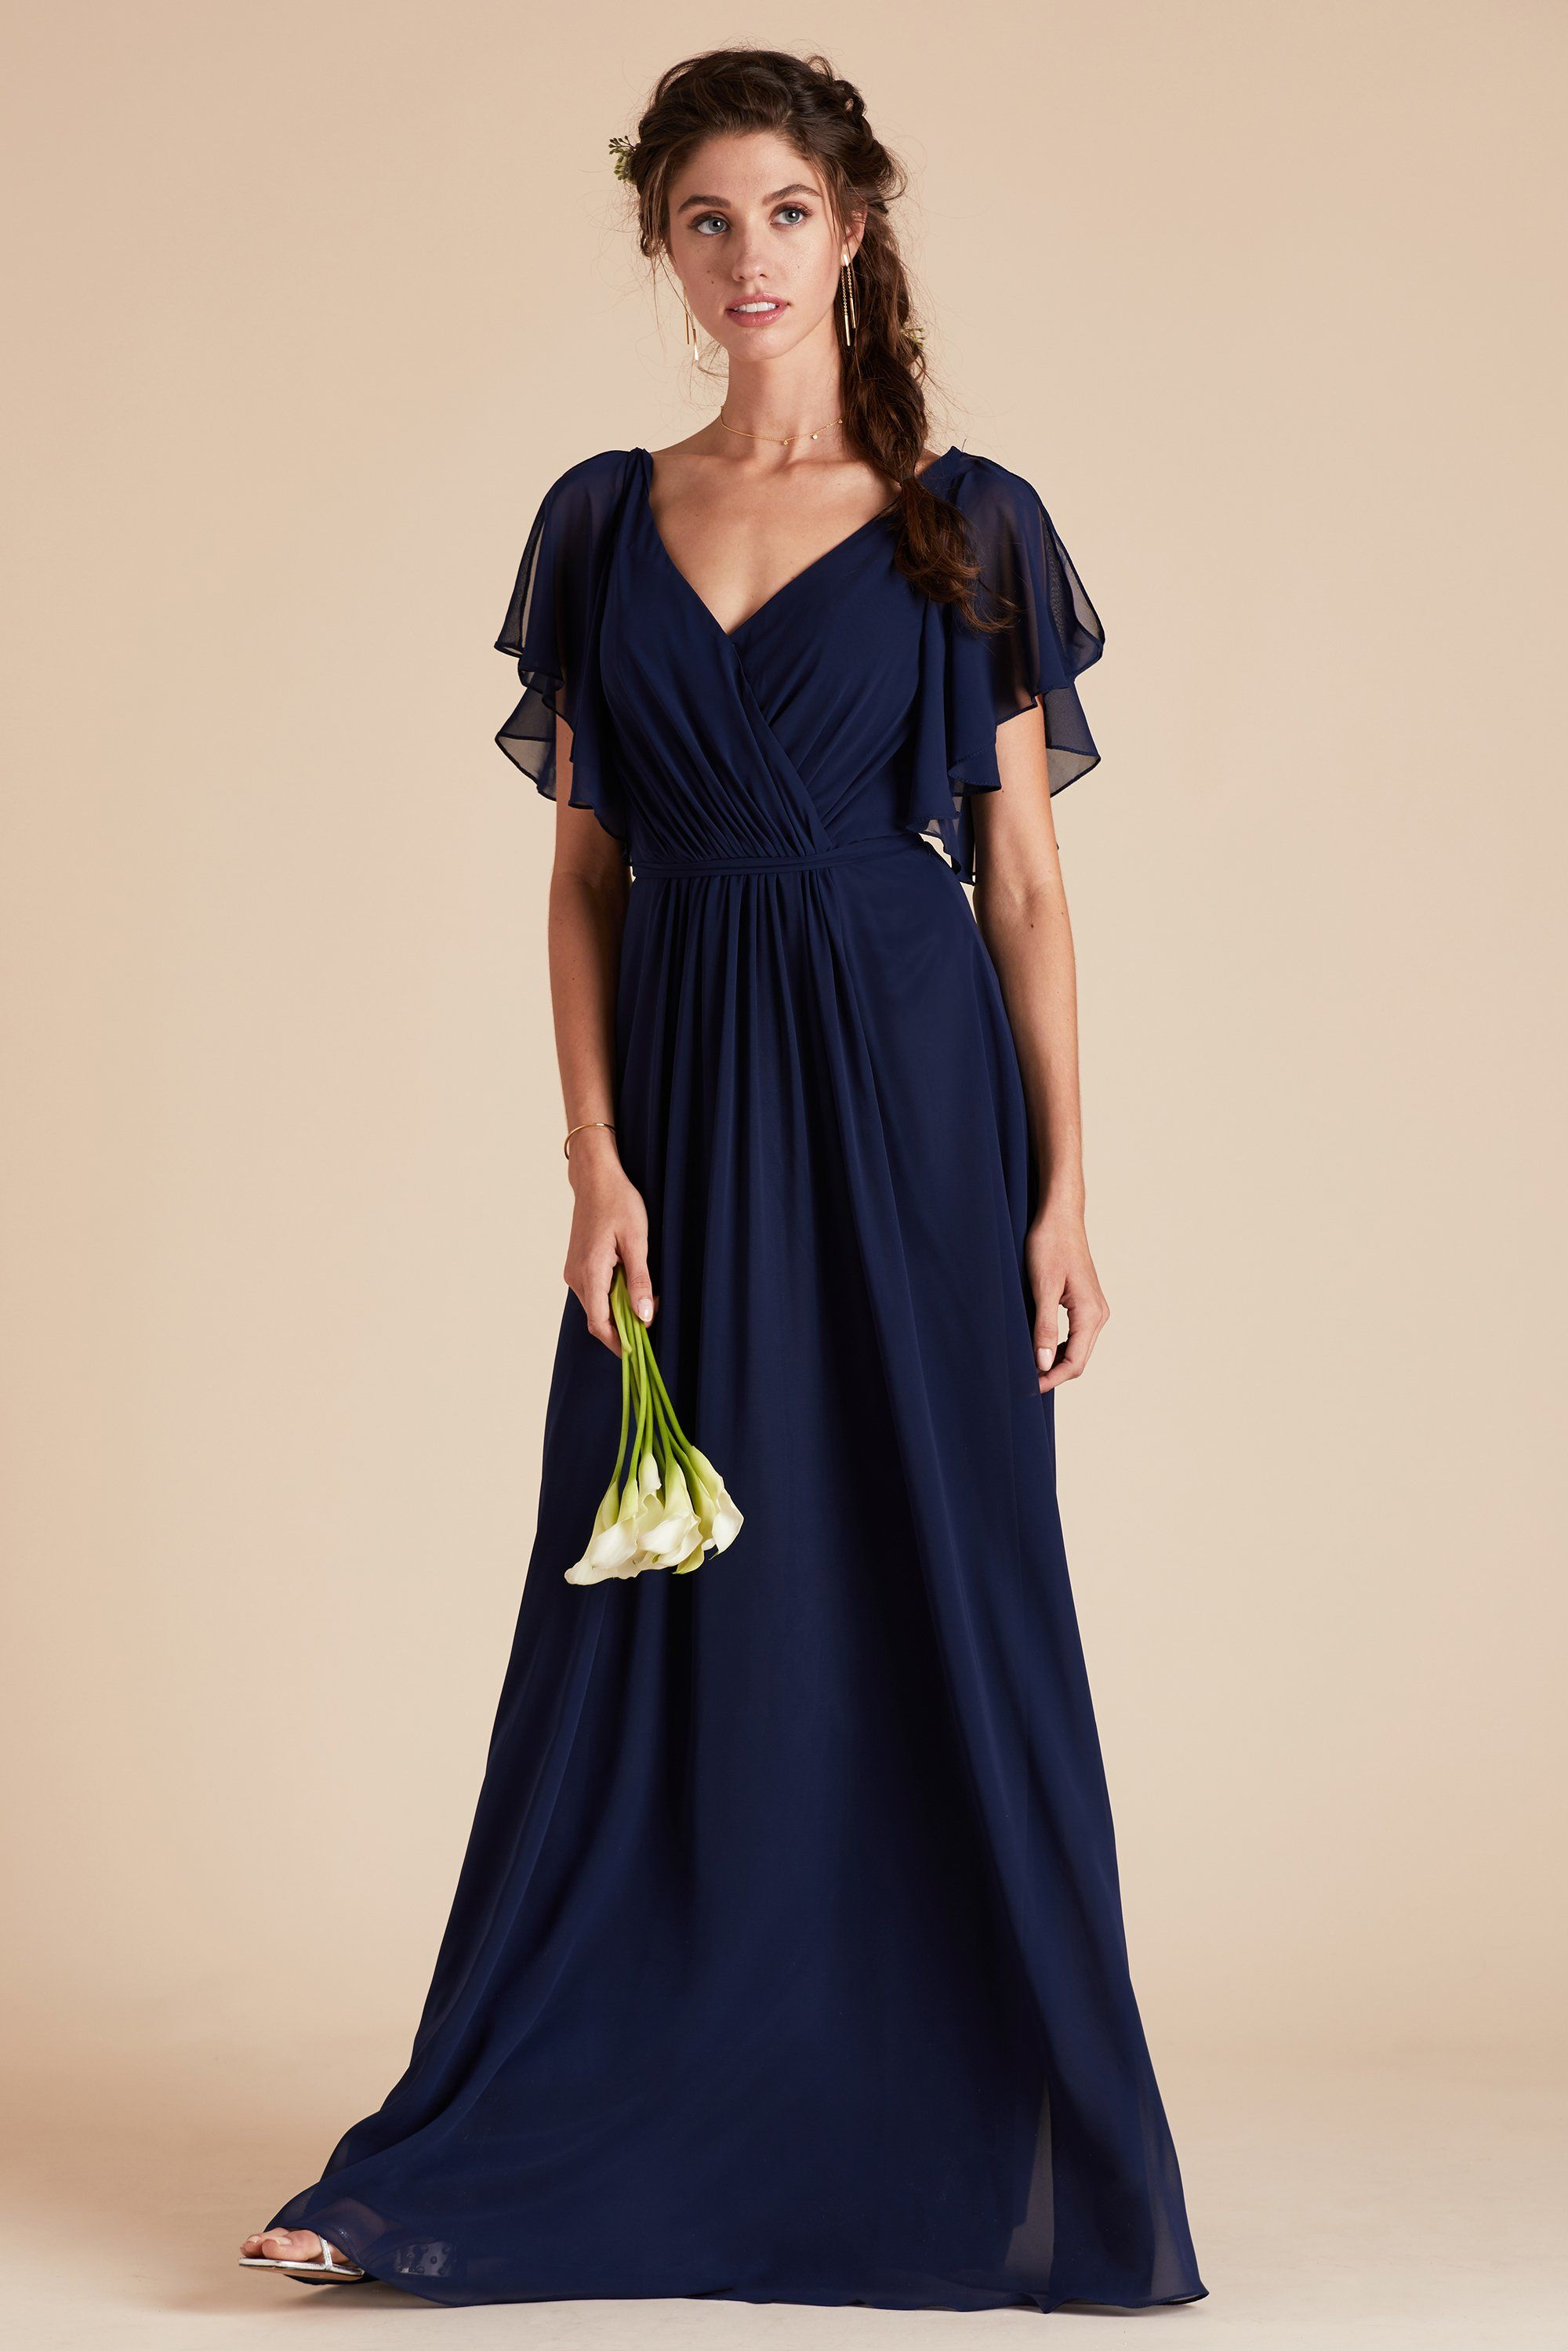 Navy Bridesmaid Dress Under 100 By Birdy Grey Muggsy Ruffle Gown Chiffon